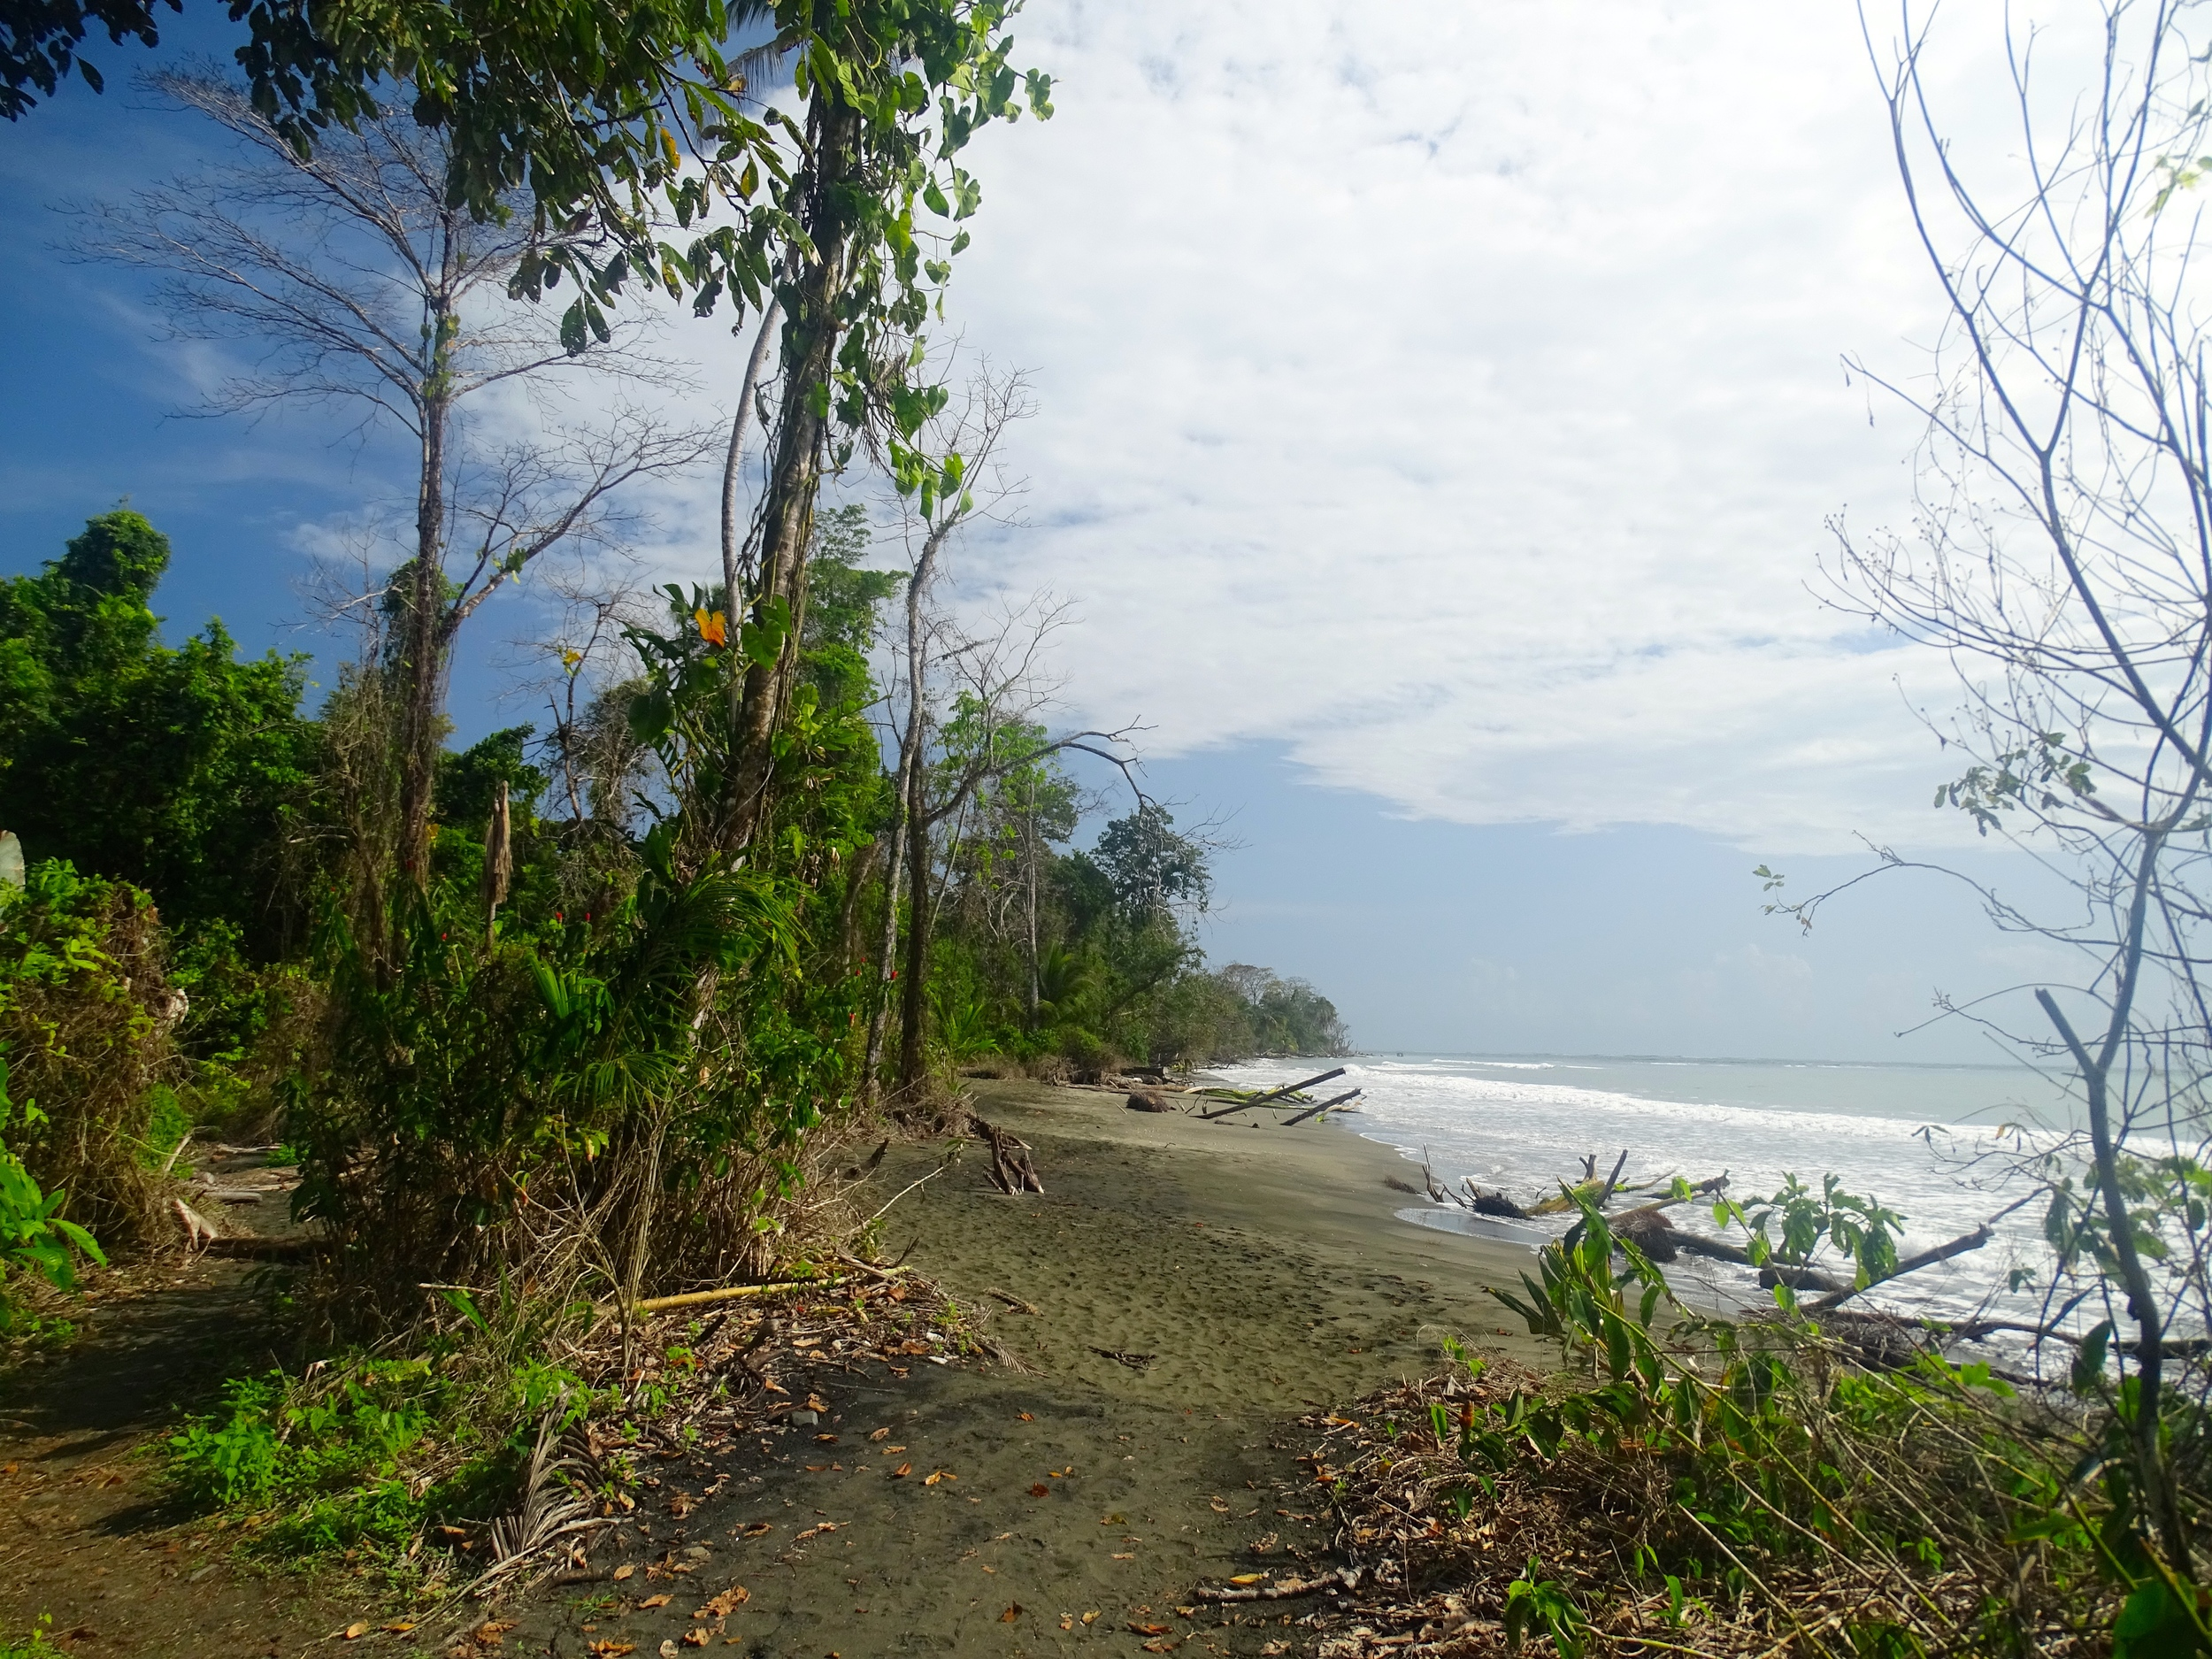 Starting hike through Cahuita National Park